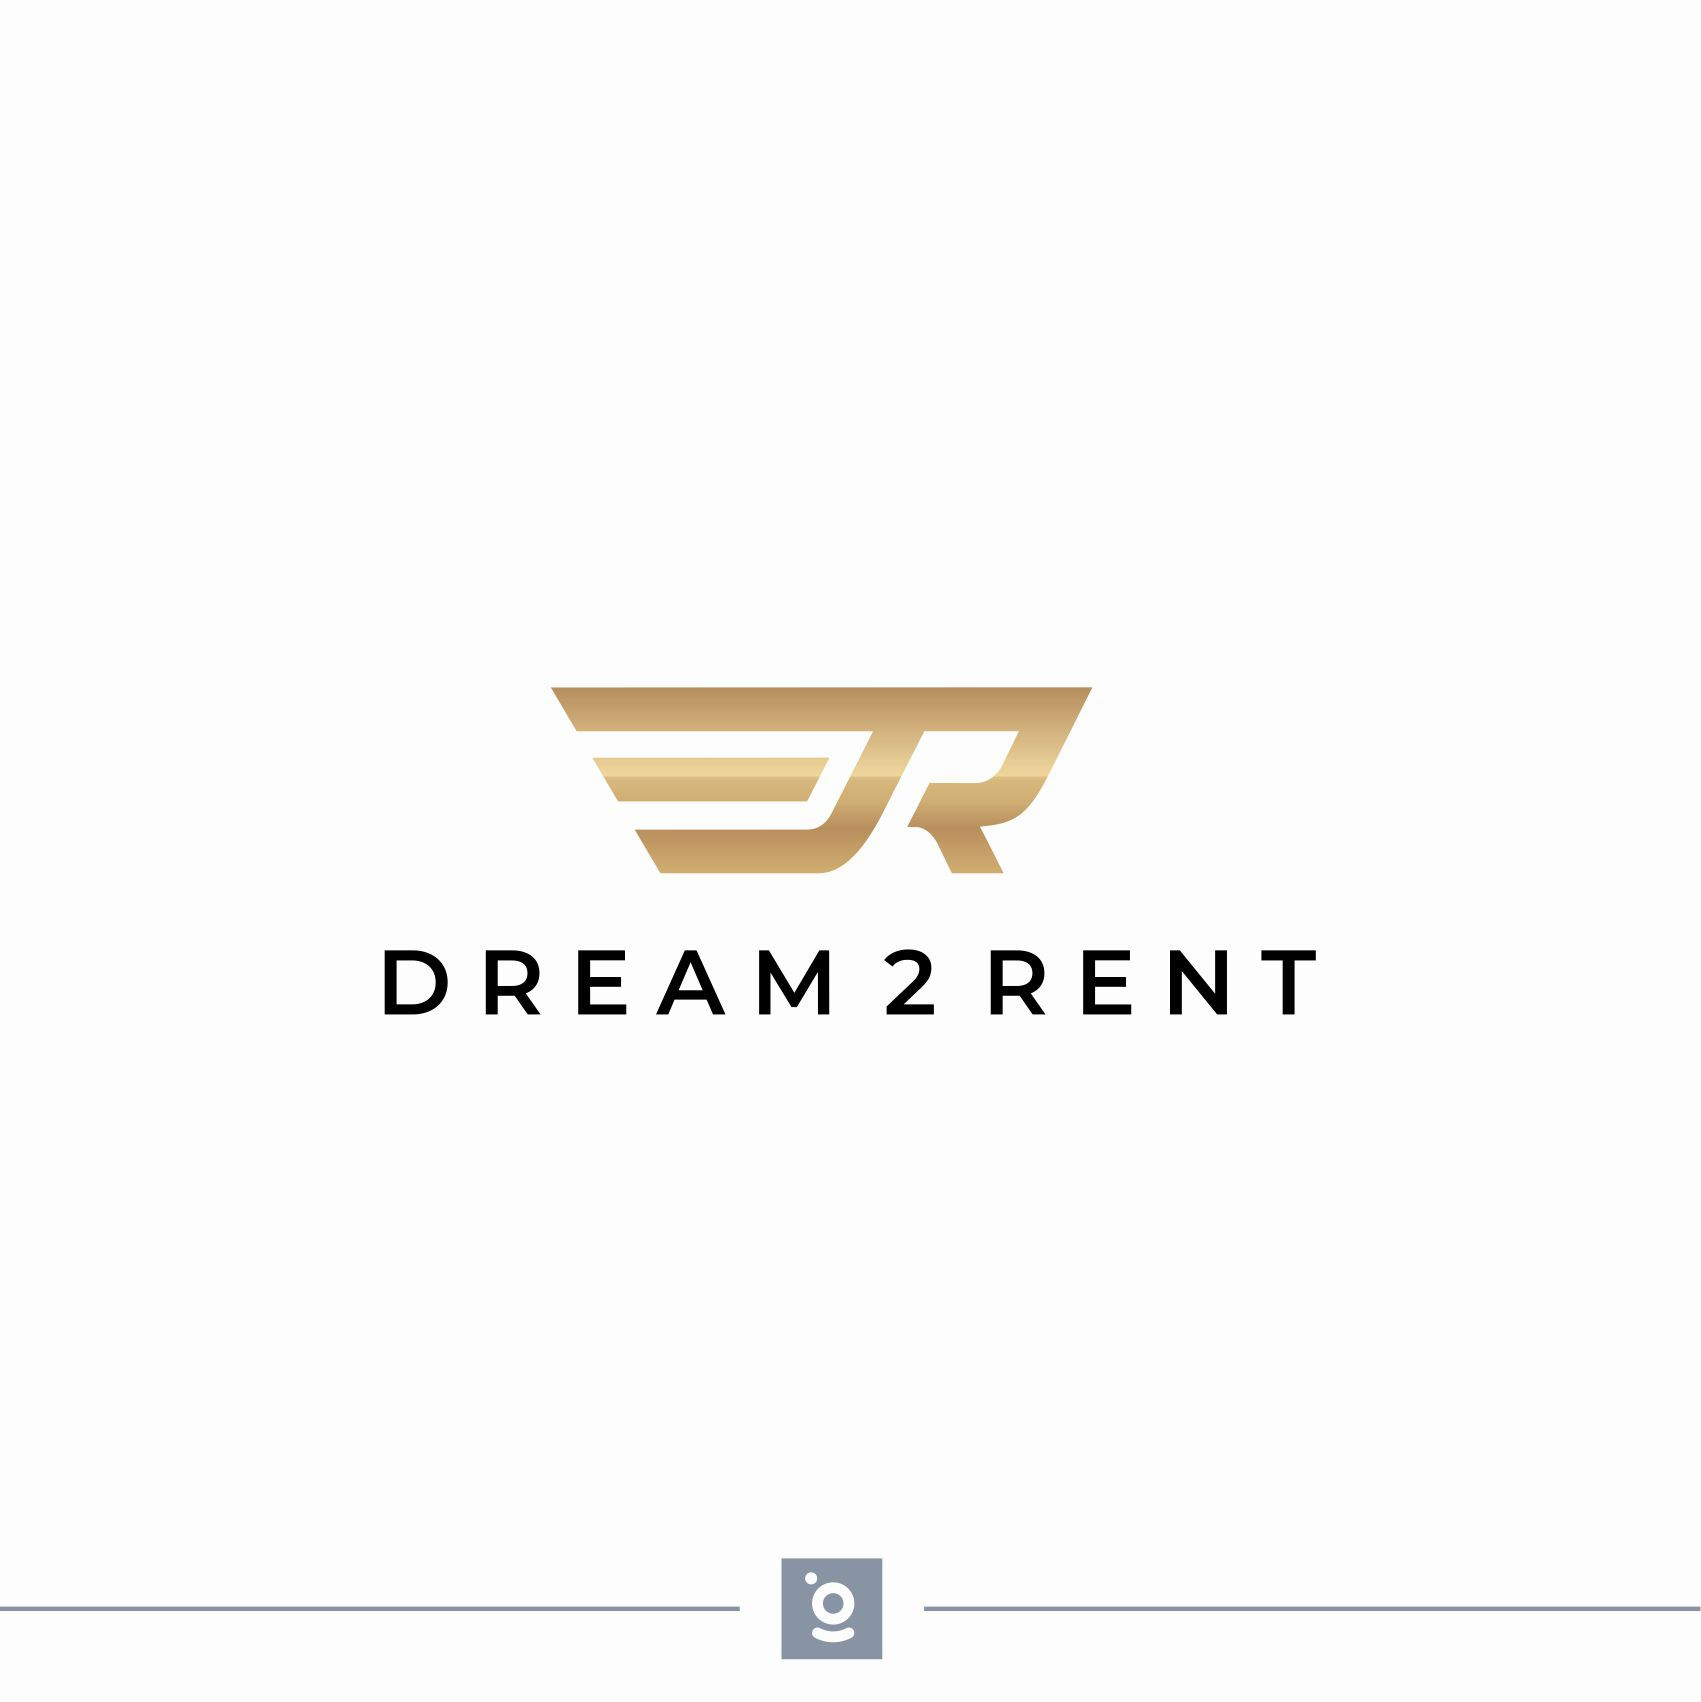 Logo for an exclusive Rental Service of Cars, Planes and Boats